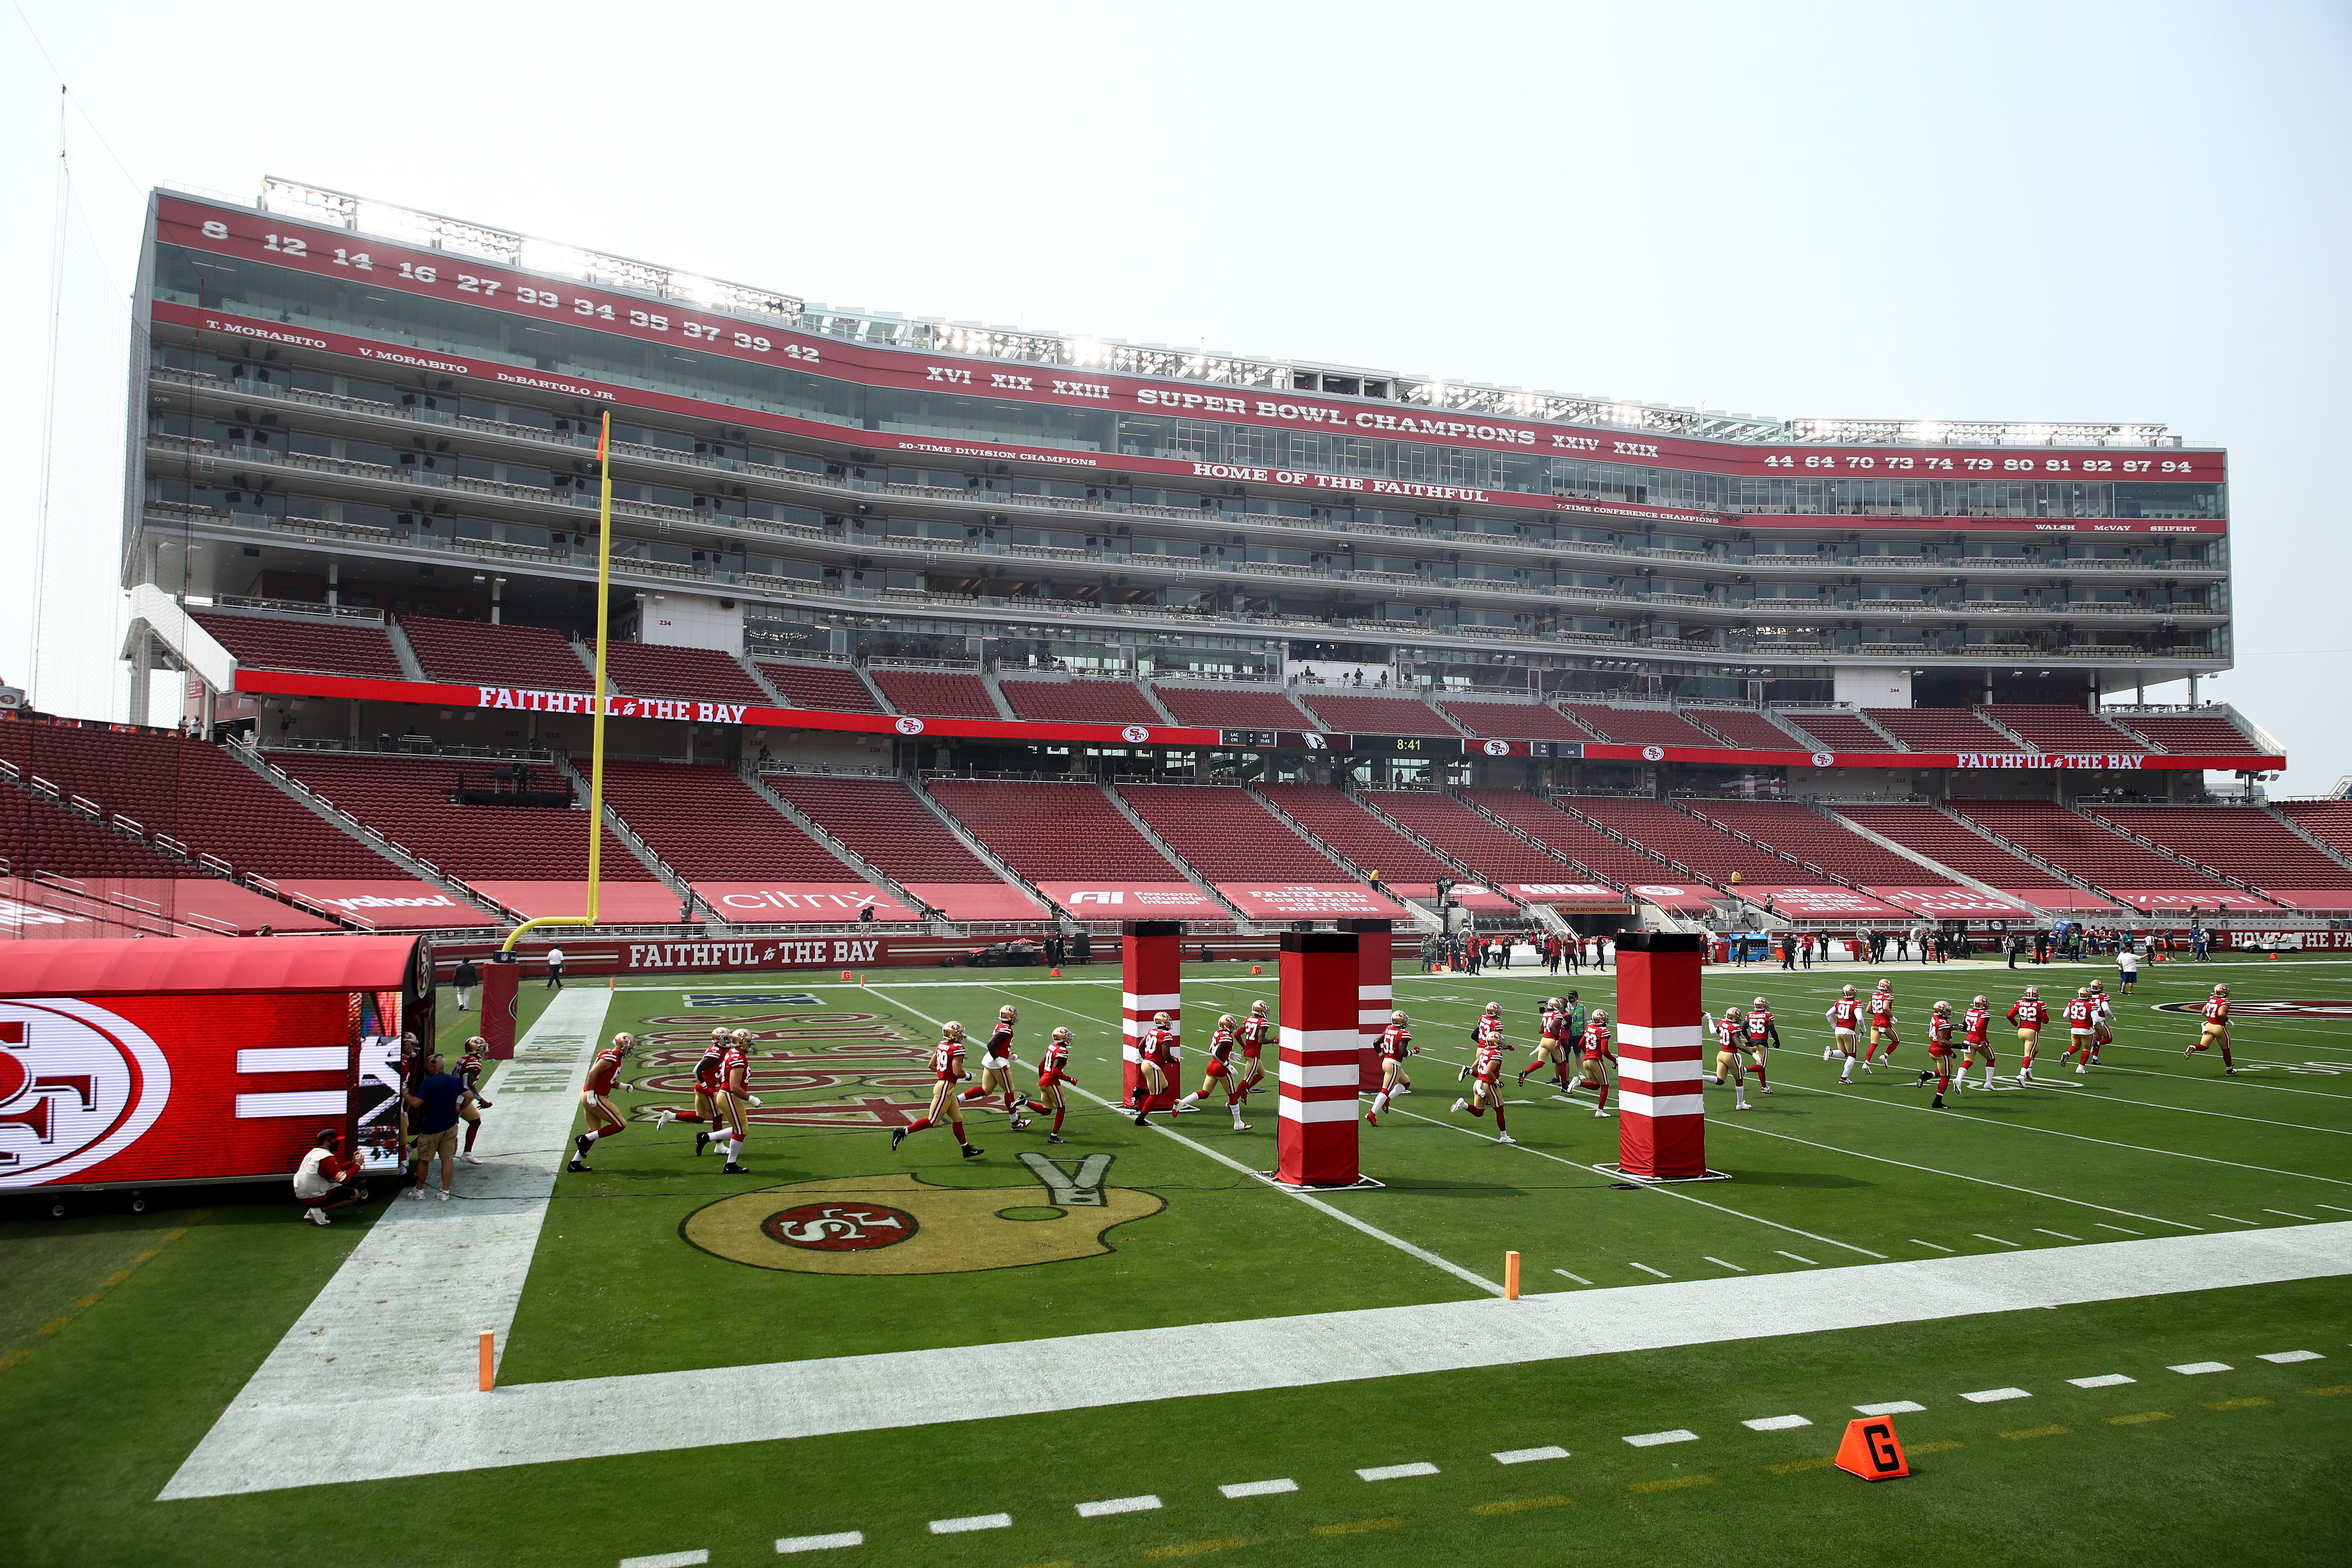 SANTA CLARA, CALIFORNIA - SEPTEMBER 13: The San Francisco 49ers run onto the field for their game against the Arizona Cardinals at Levi's Stadium on September 13, 2020 in Santa Clara, California. (Photo by Ezra Shaw/Getty Images)